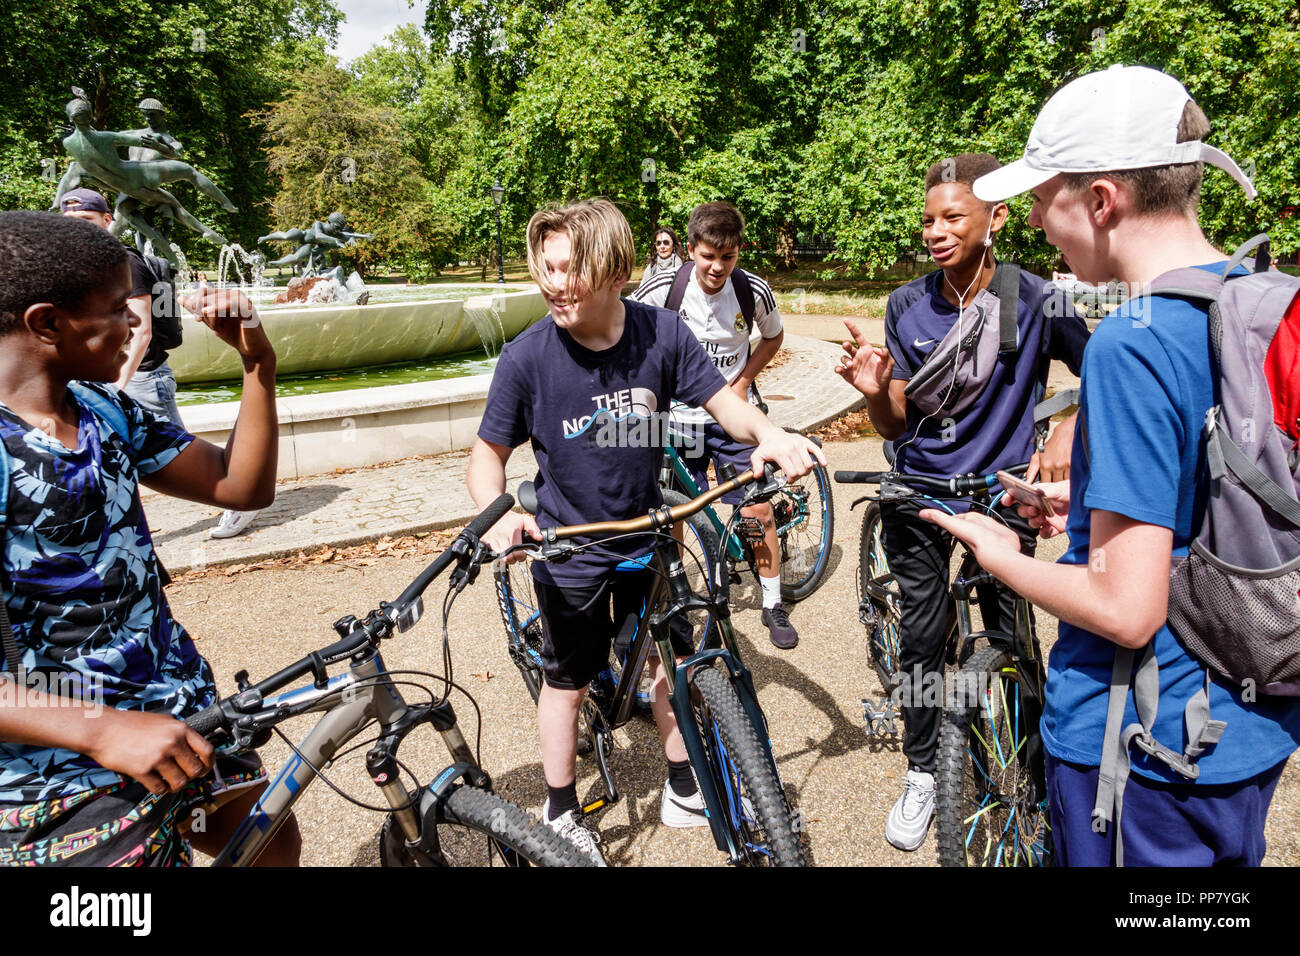 London England United Kingdom Great Britain Hyde Park historic Royal Park Joy of Life Fountain Black boy teen student bicycles cyclists friends - Stock Image